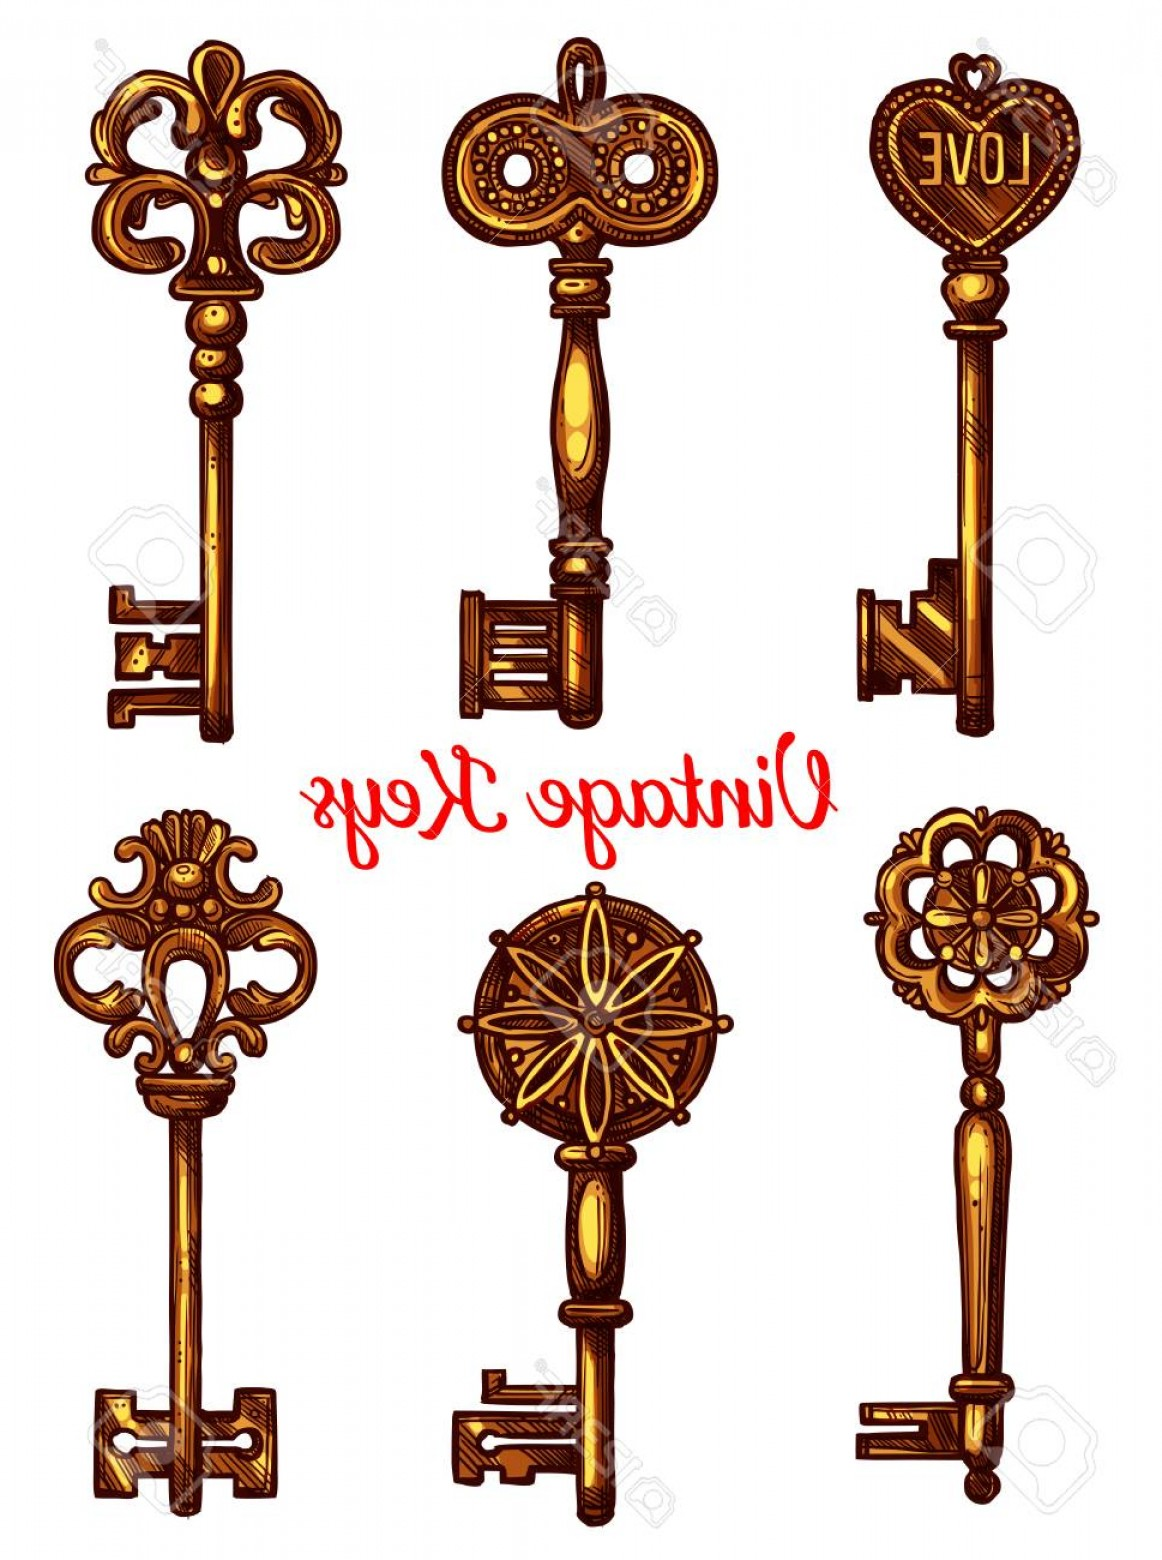 Old Key Vector: Photostock Vector Vintage And Old Keys Vector Icons Sketch Set Of Metal Brass Or Bronze Lock Key Symbols With Antique